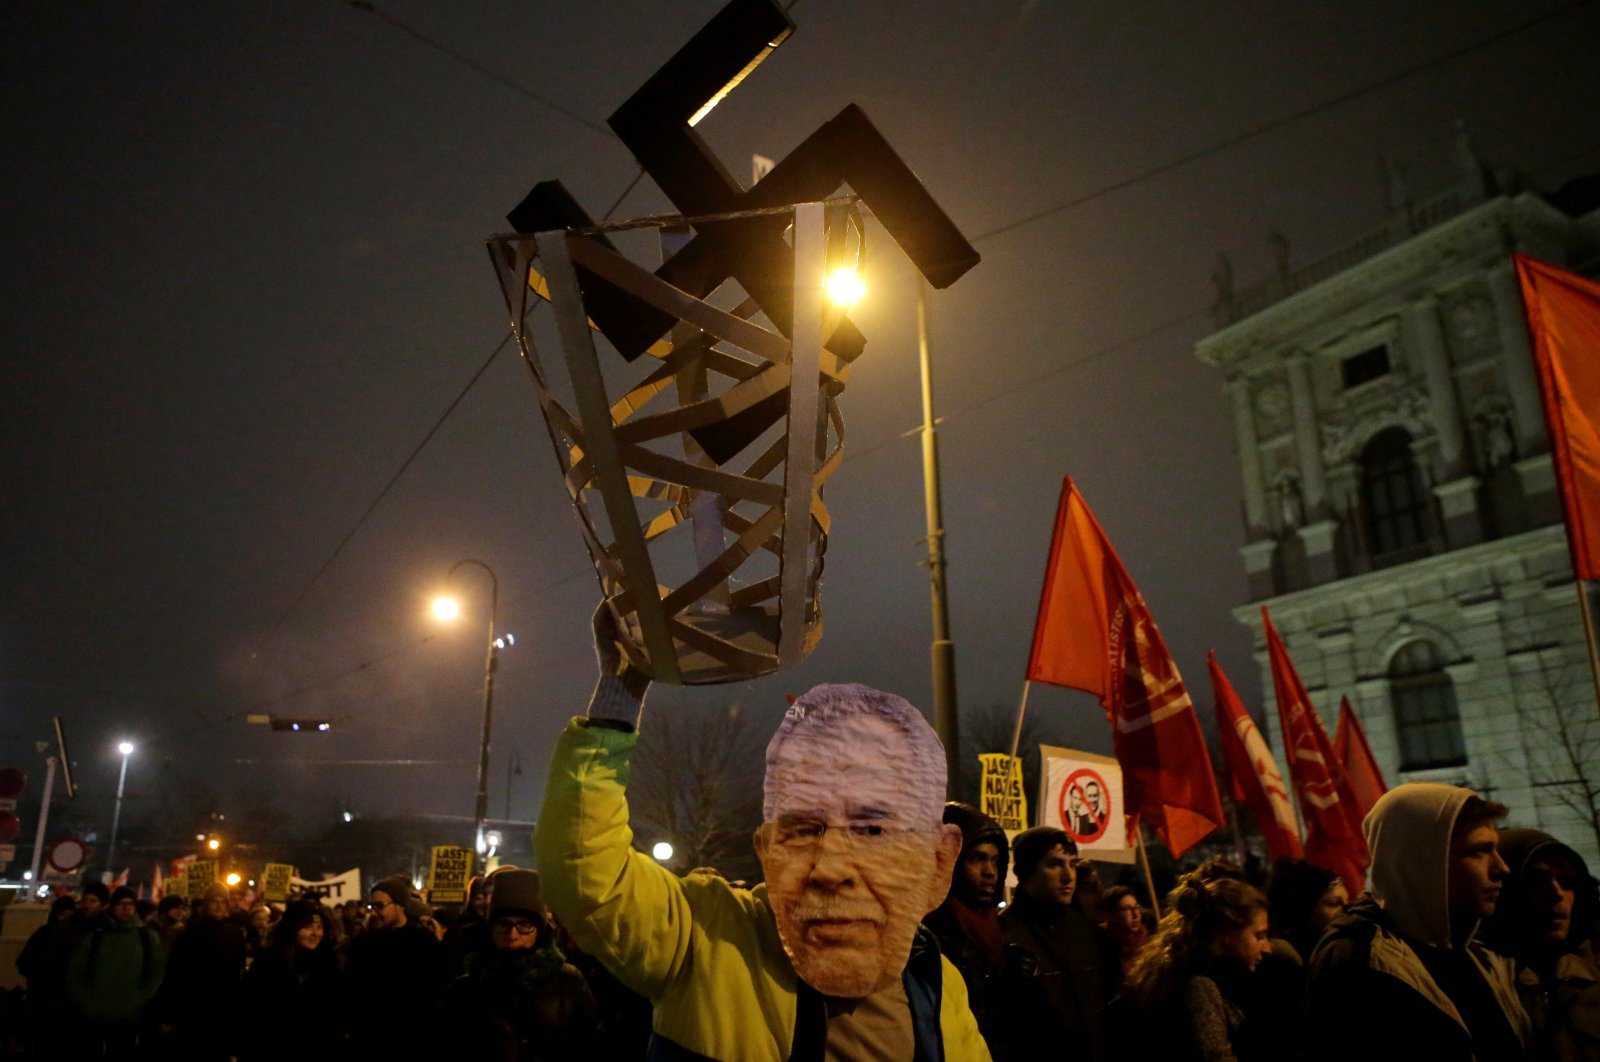 A protester wearing a President Alexander Van der Bellen mask holds a swastika in a basket during a demonstration against the far-right Freedom Party's annual Academics' Ball in Vienna, Austria, Jan. 26, 2018. (Reuters Photo)